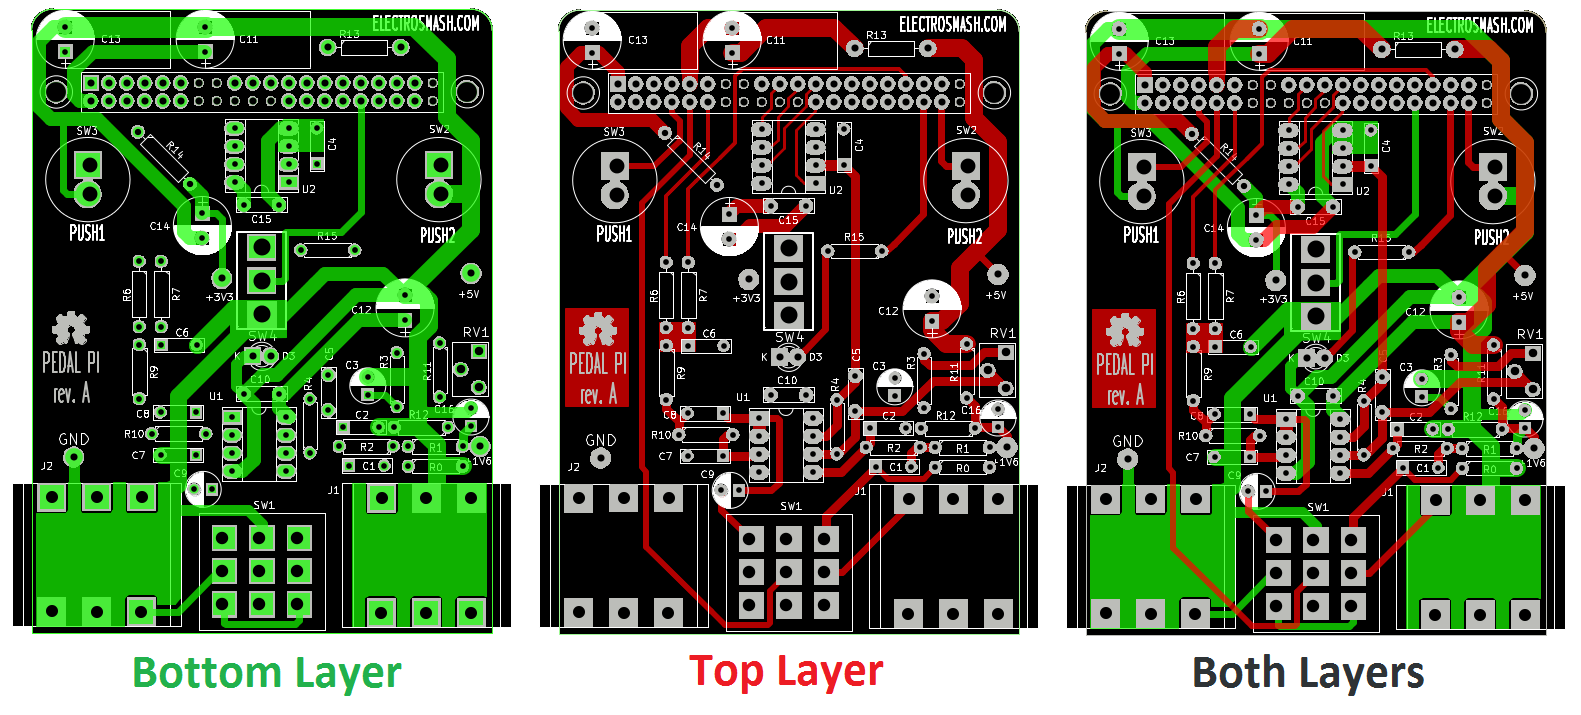 Pedal-Pi-Layout.png